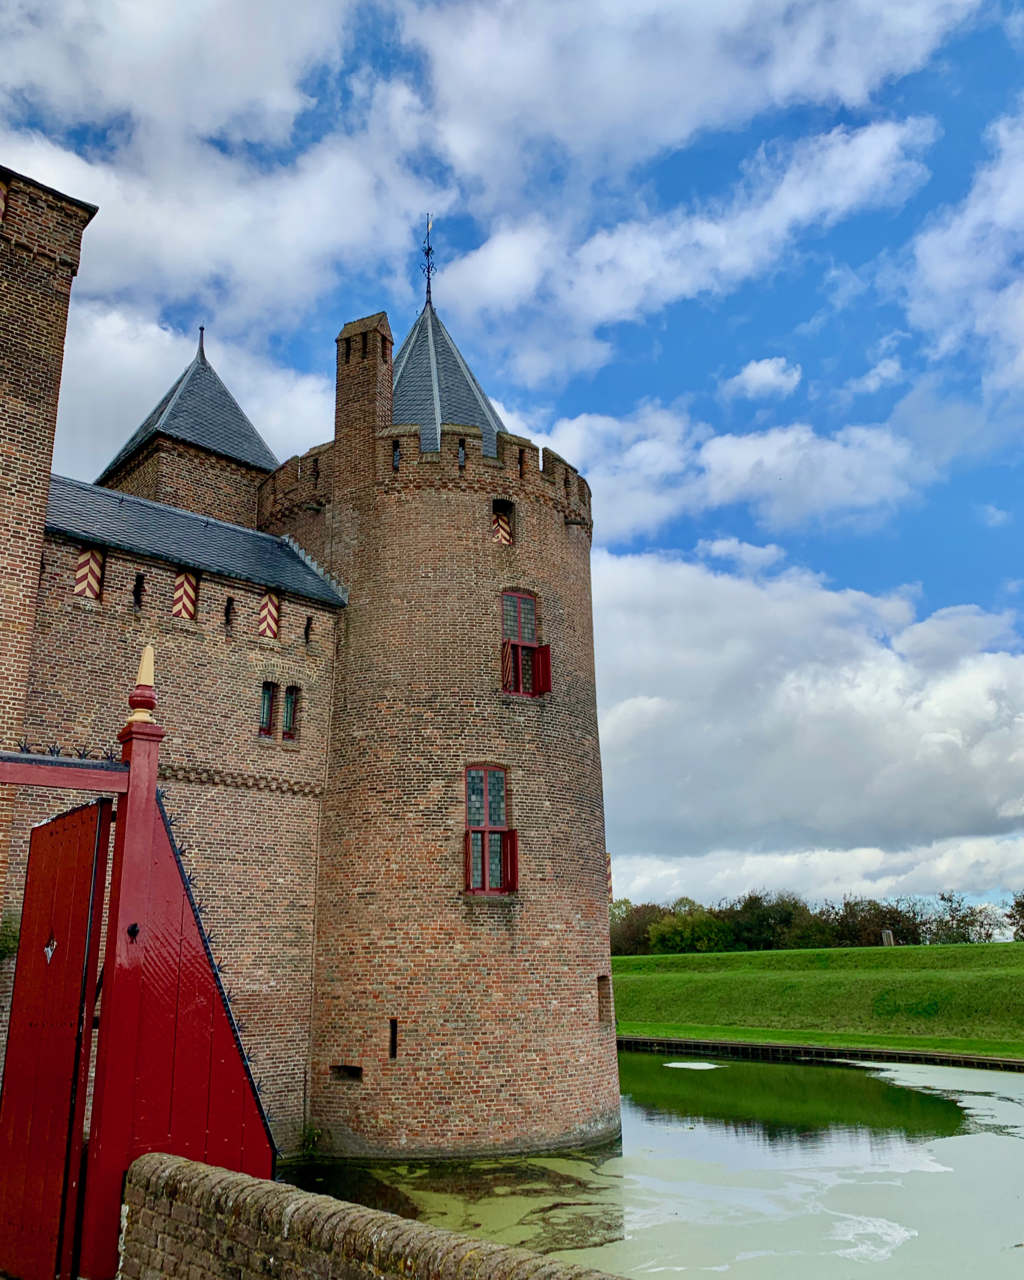 Image of one of the towers of Muiderslot Castle with a cloudy sky as background